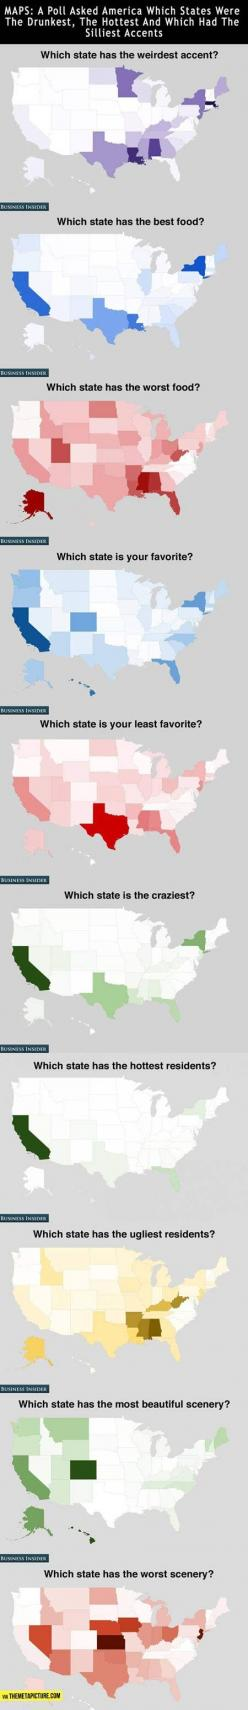 This is hilarious: Maps Usa, California Pride, Funny Usa Map, Colorado Funny, States Funny, Manly Funny, Americans Feel, Funny States